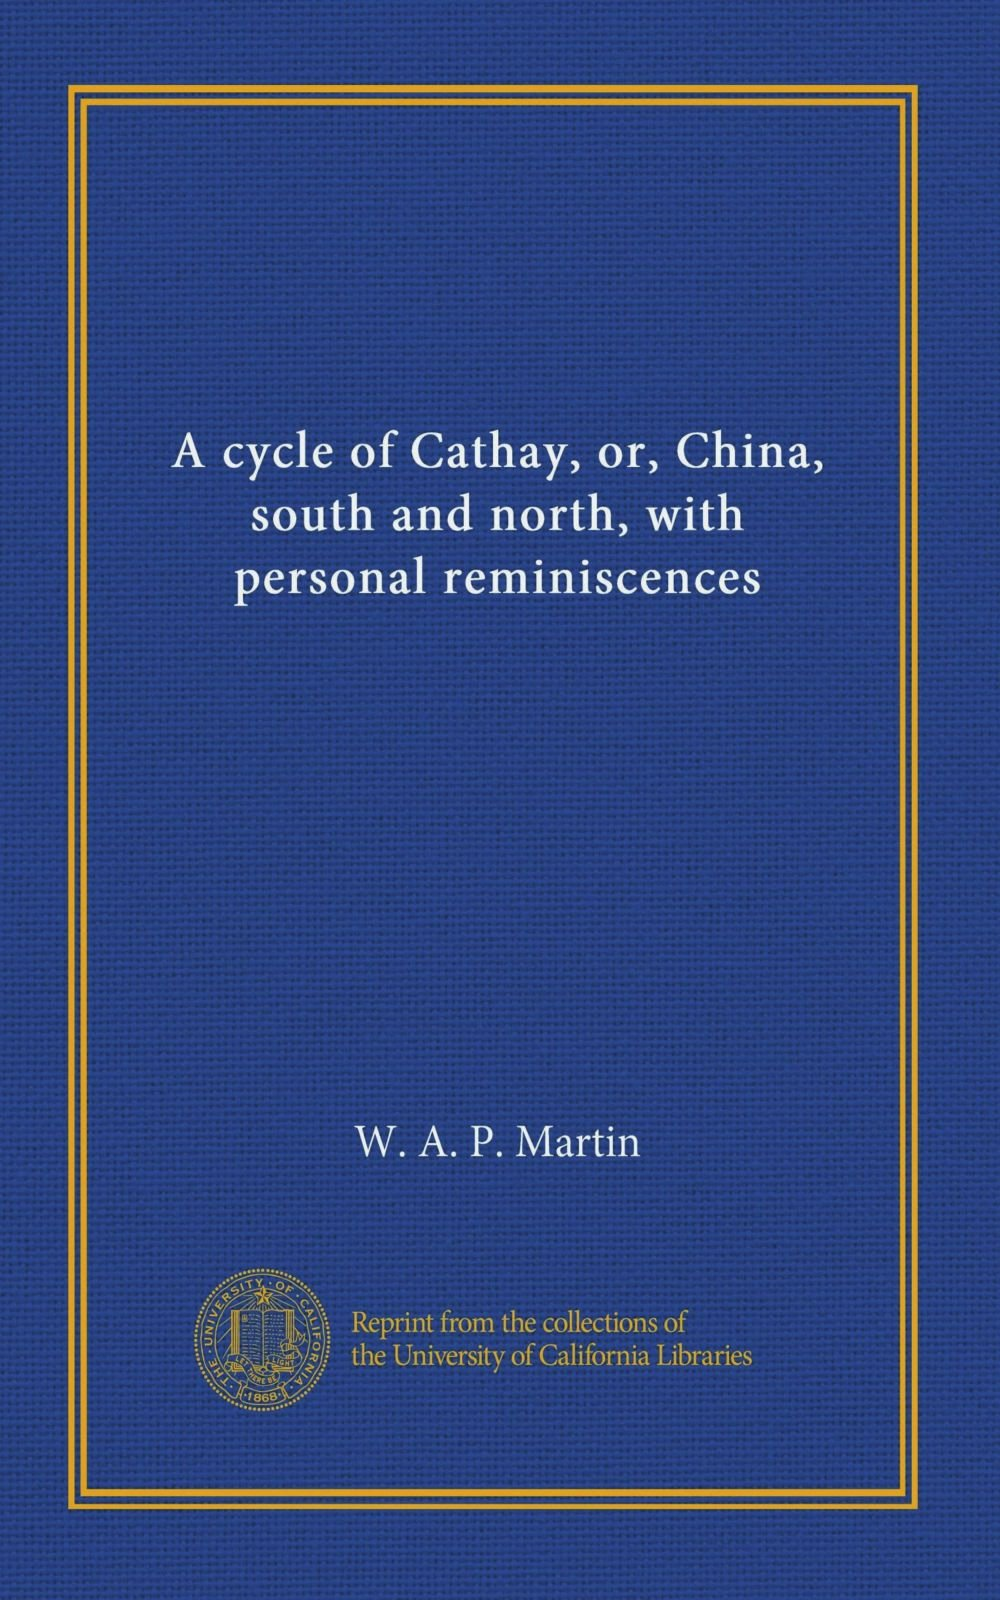 Download A cycle of Cathay, or, China, south and north, with personal reminiscences pdf